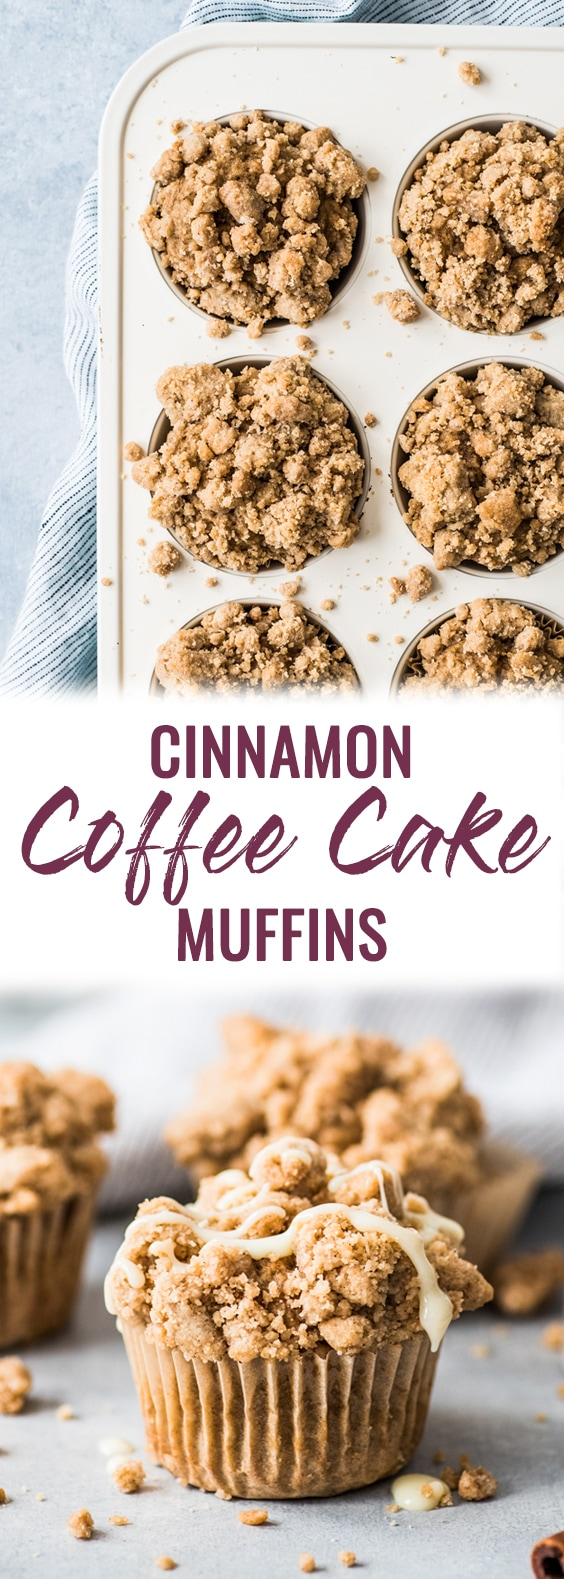 These cinnamon coffee cake muffins topped with a crunchy streusel topping are made with Greek yogurt for a healthier homemade treat! #coffeecake